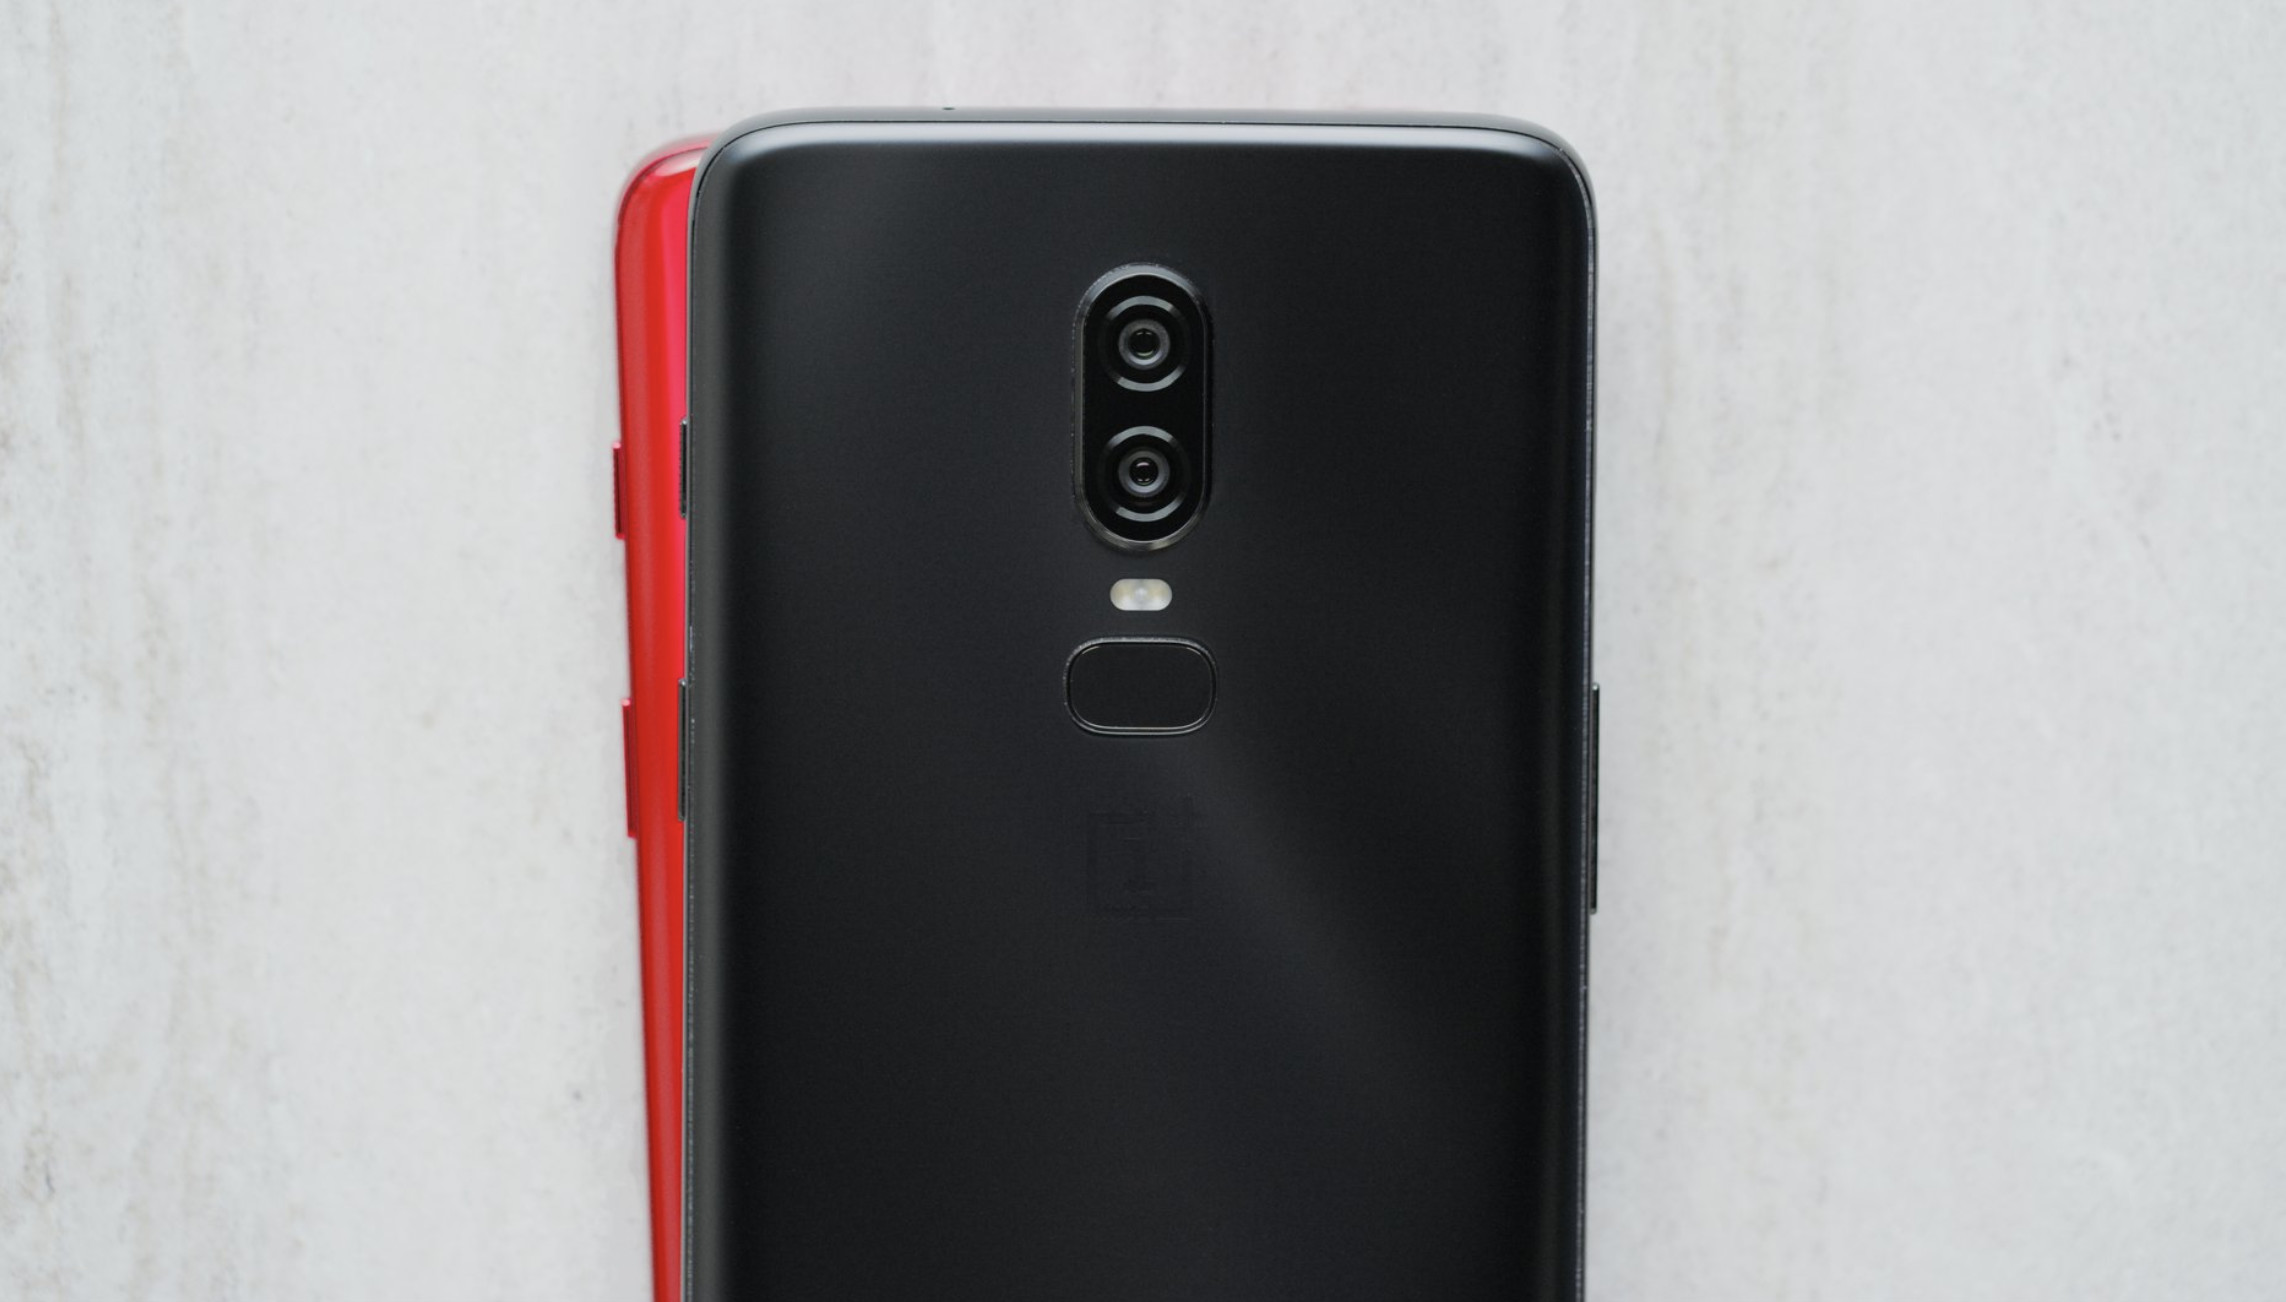 Here's the OnePlus 6 in beautiful new Red Color